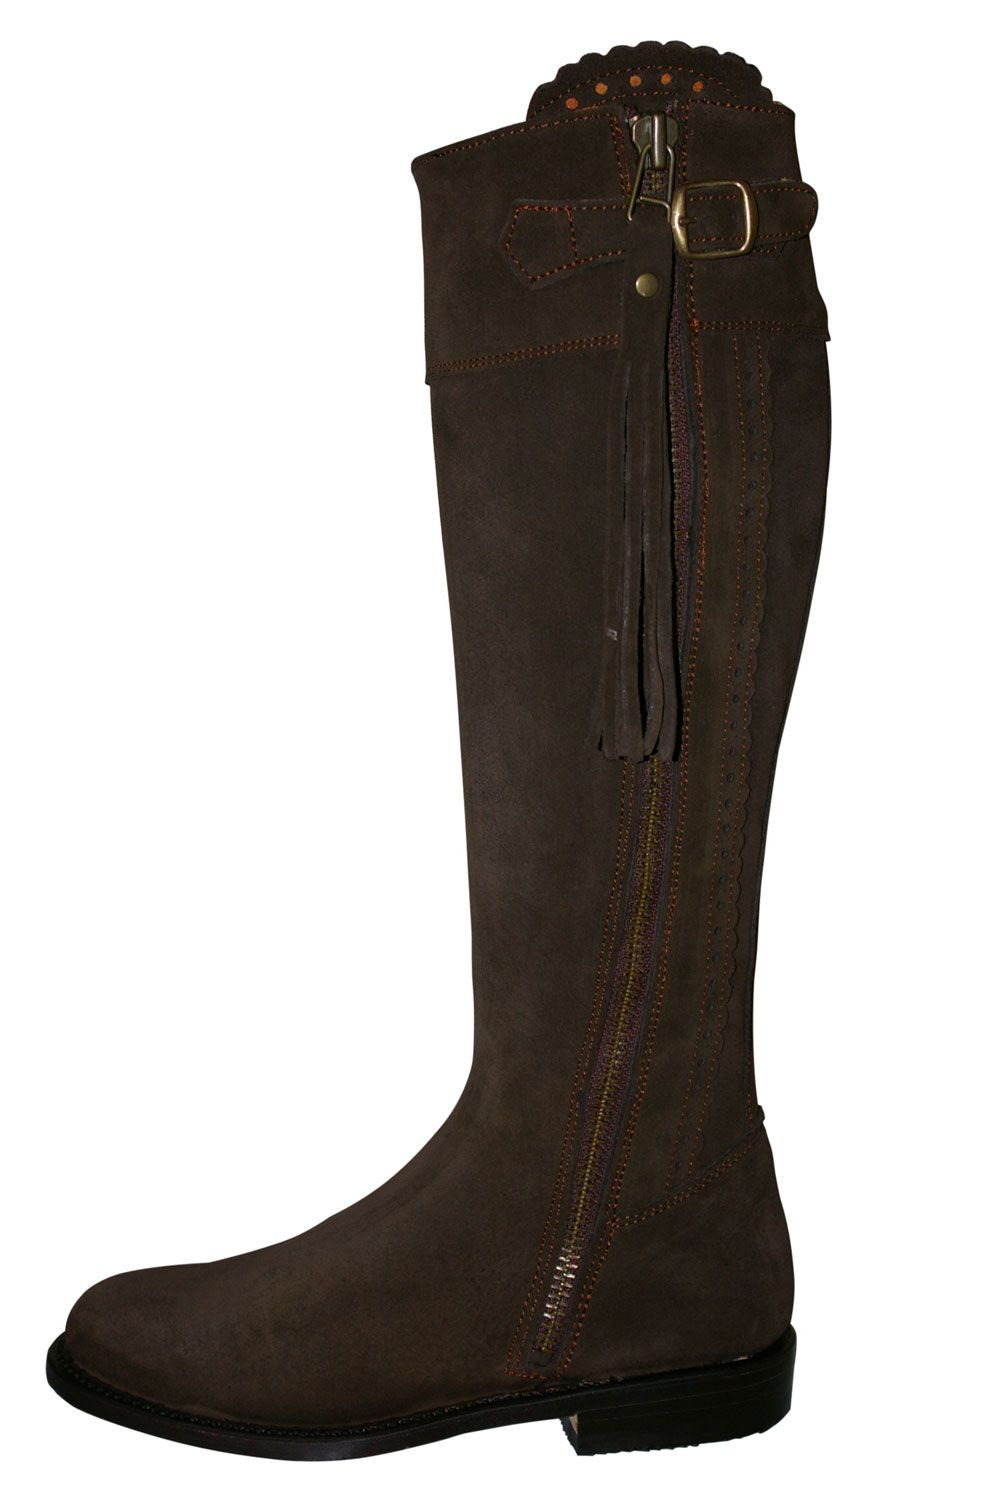 Spanish Riding Boots Boots Spanish Suede Country Boots Riding Boots Spanish Riding Boots